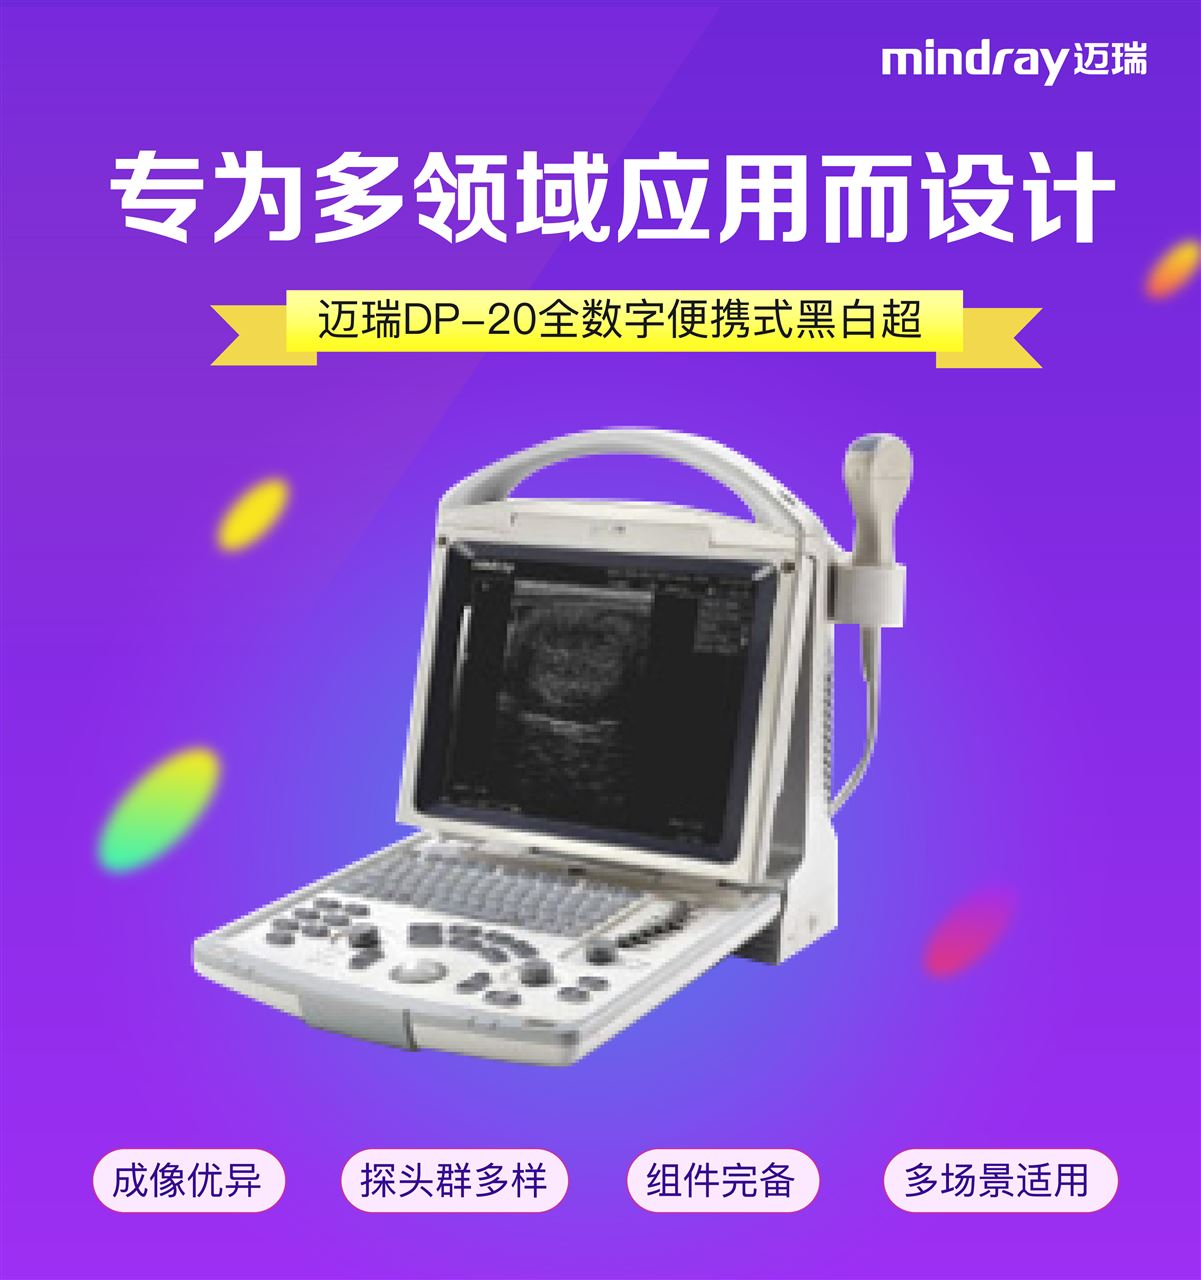 <strong><strong><strong>迈瑞黑白超诊断系统</strong></strong></strong>BP-20产品介绍